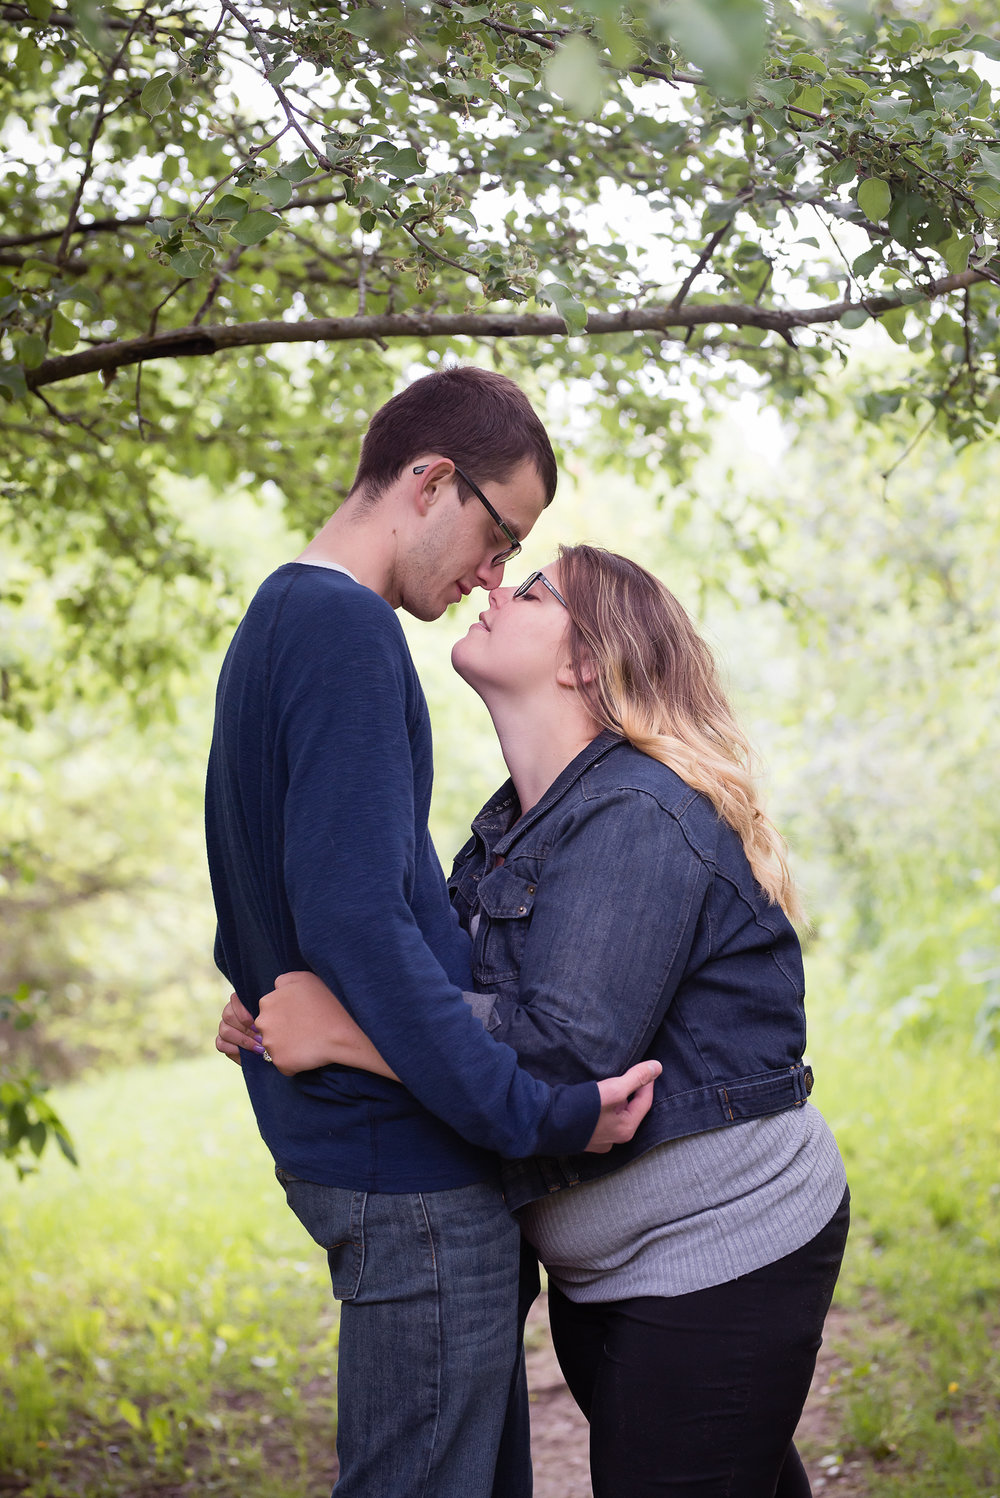 Couples222NaomiLuciennePhotography062018-2-Edit.jpg